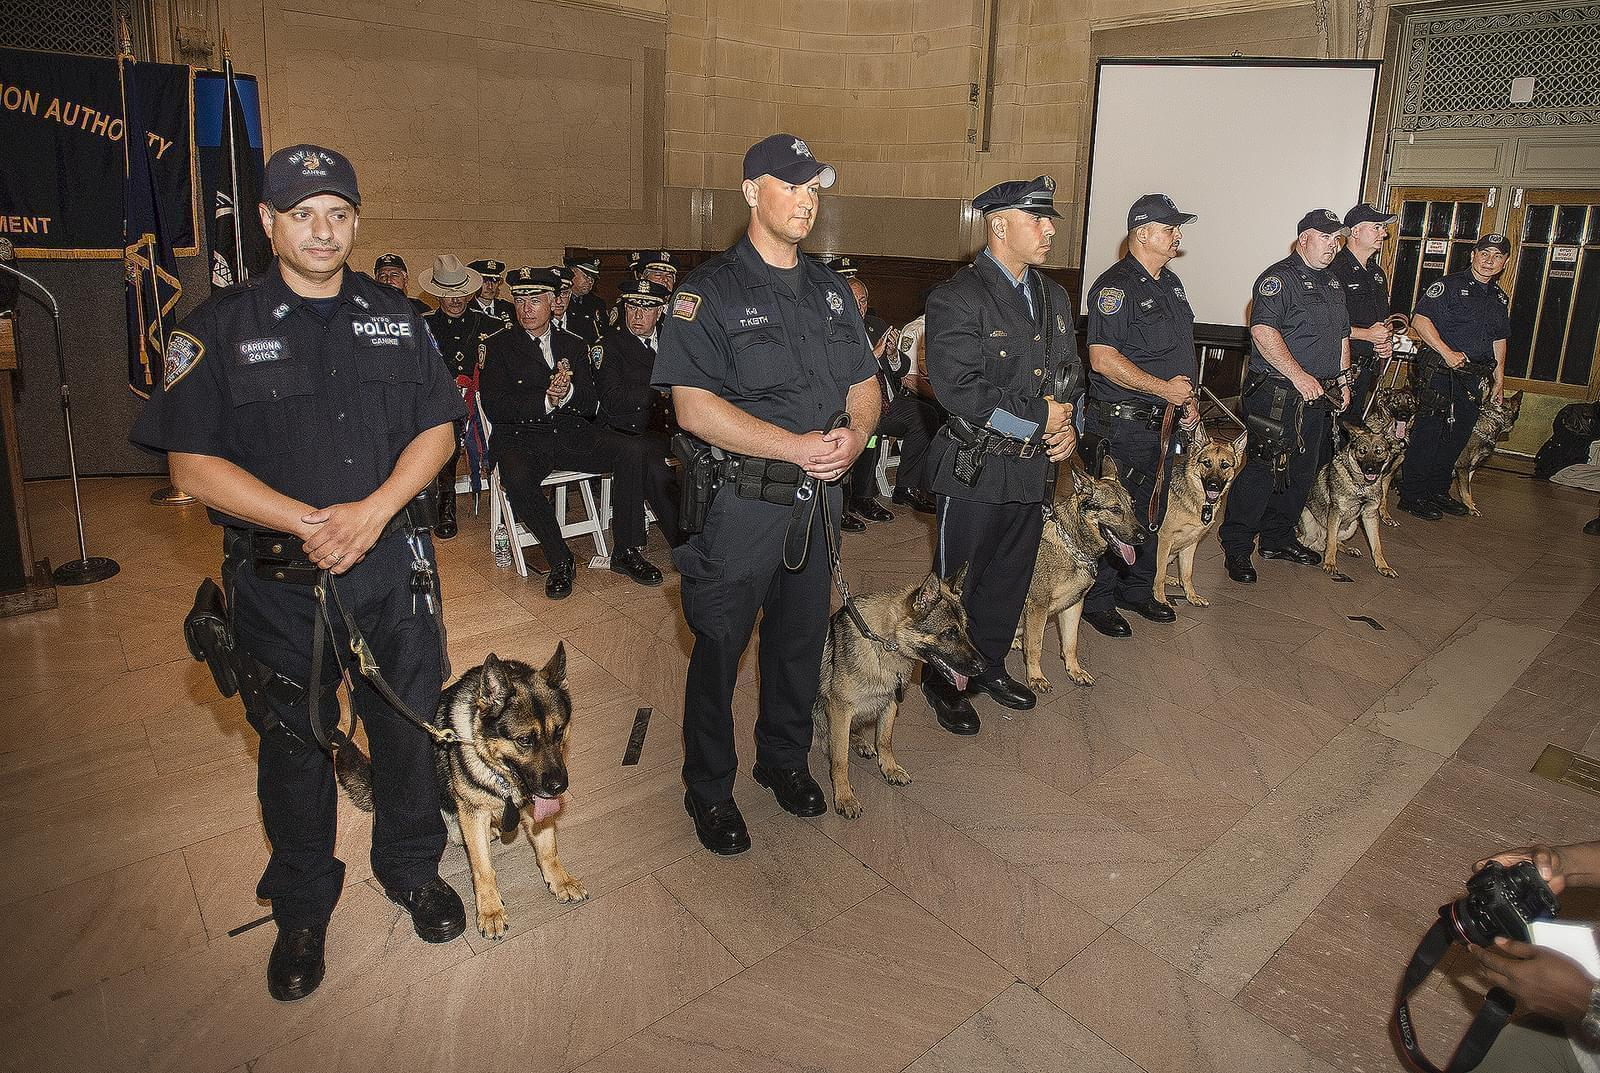 Police officers and K-9 Officers in New York City.